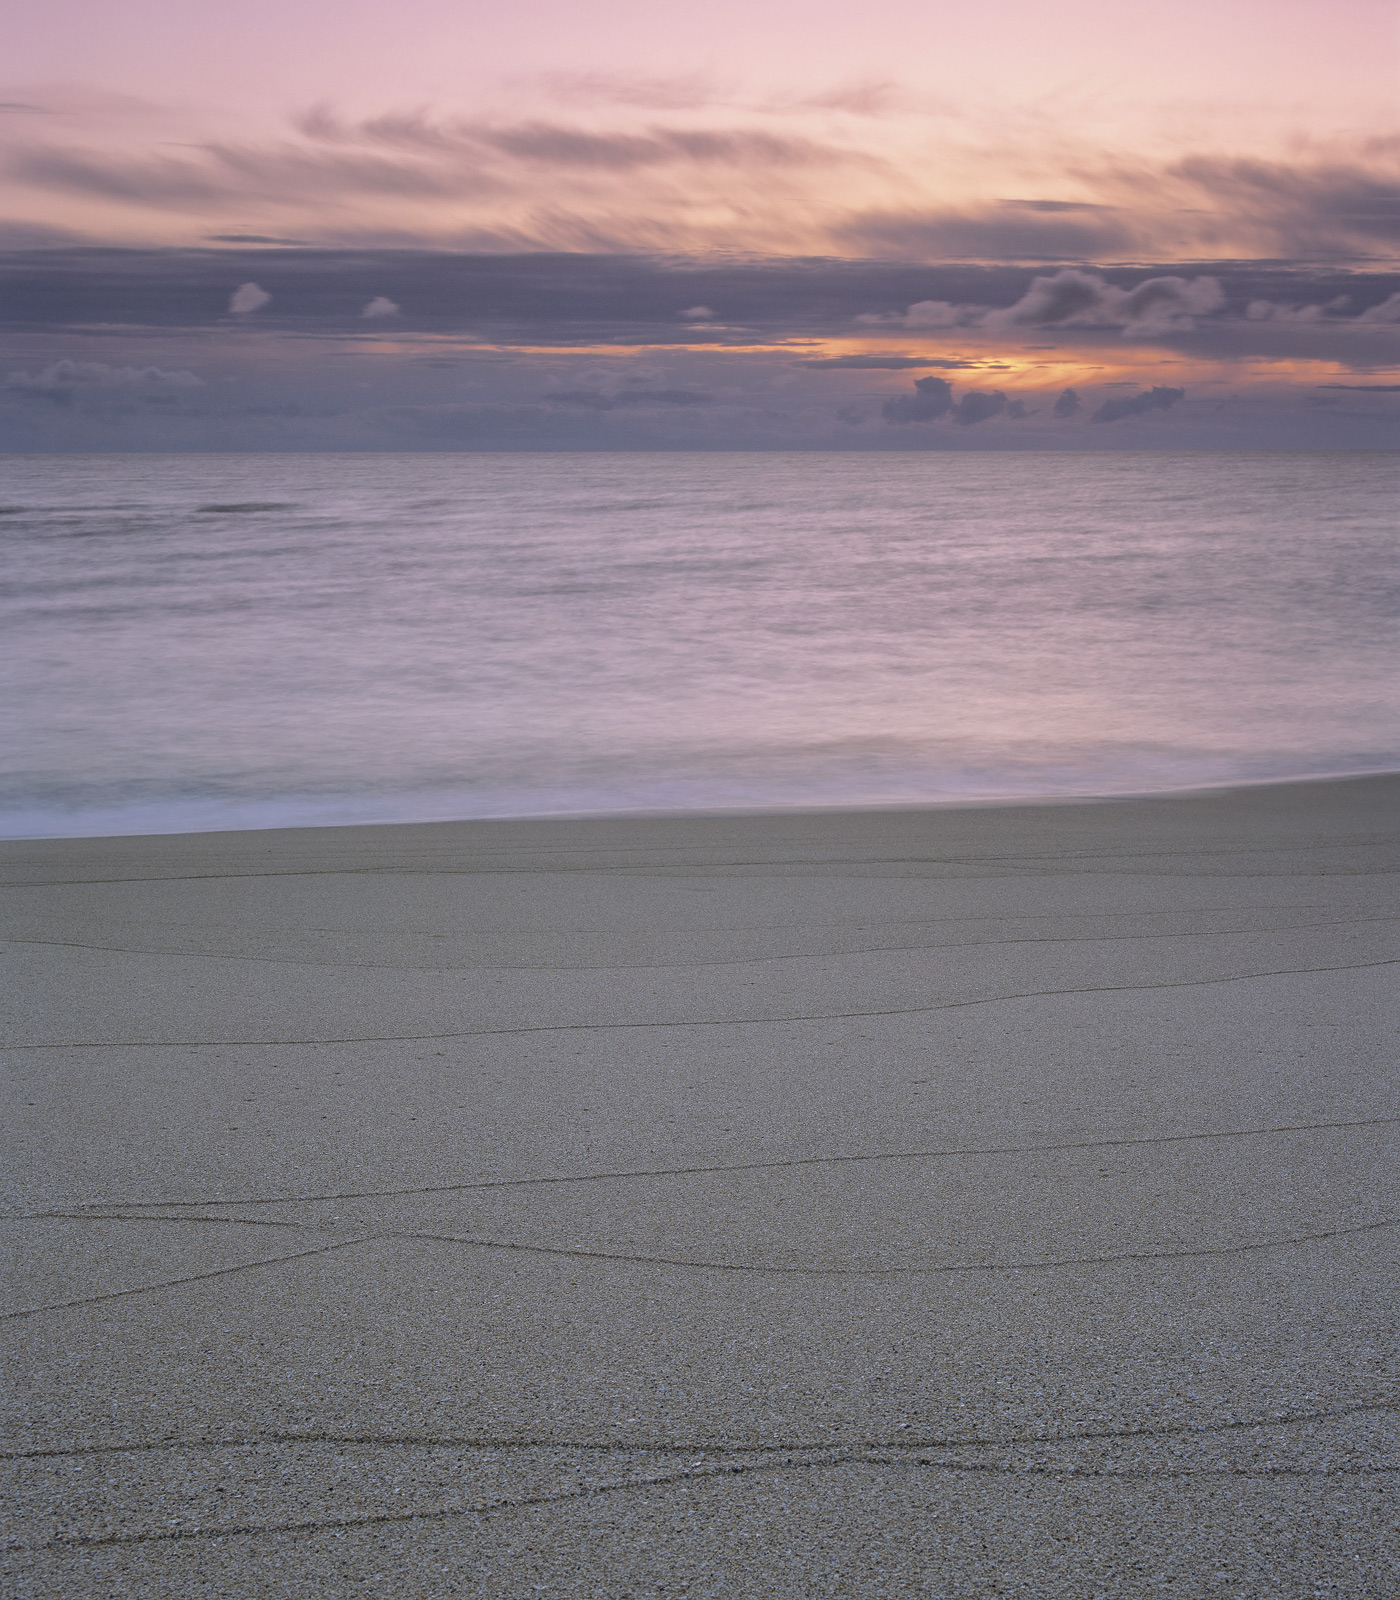 Traigh Mhor has a very coarse grained sandy beach which is quite orangey in colour and being subject to west coast tides with...